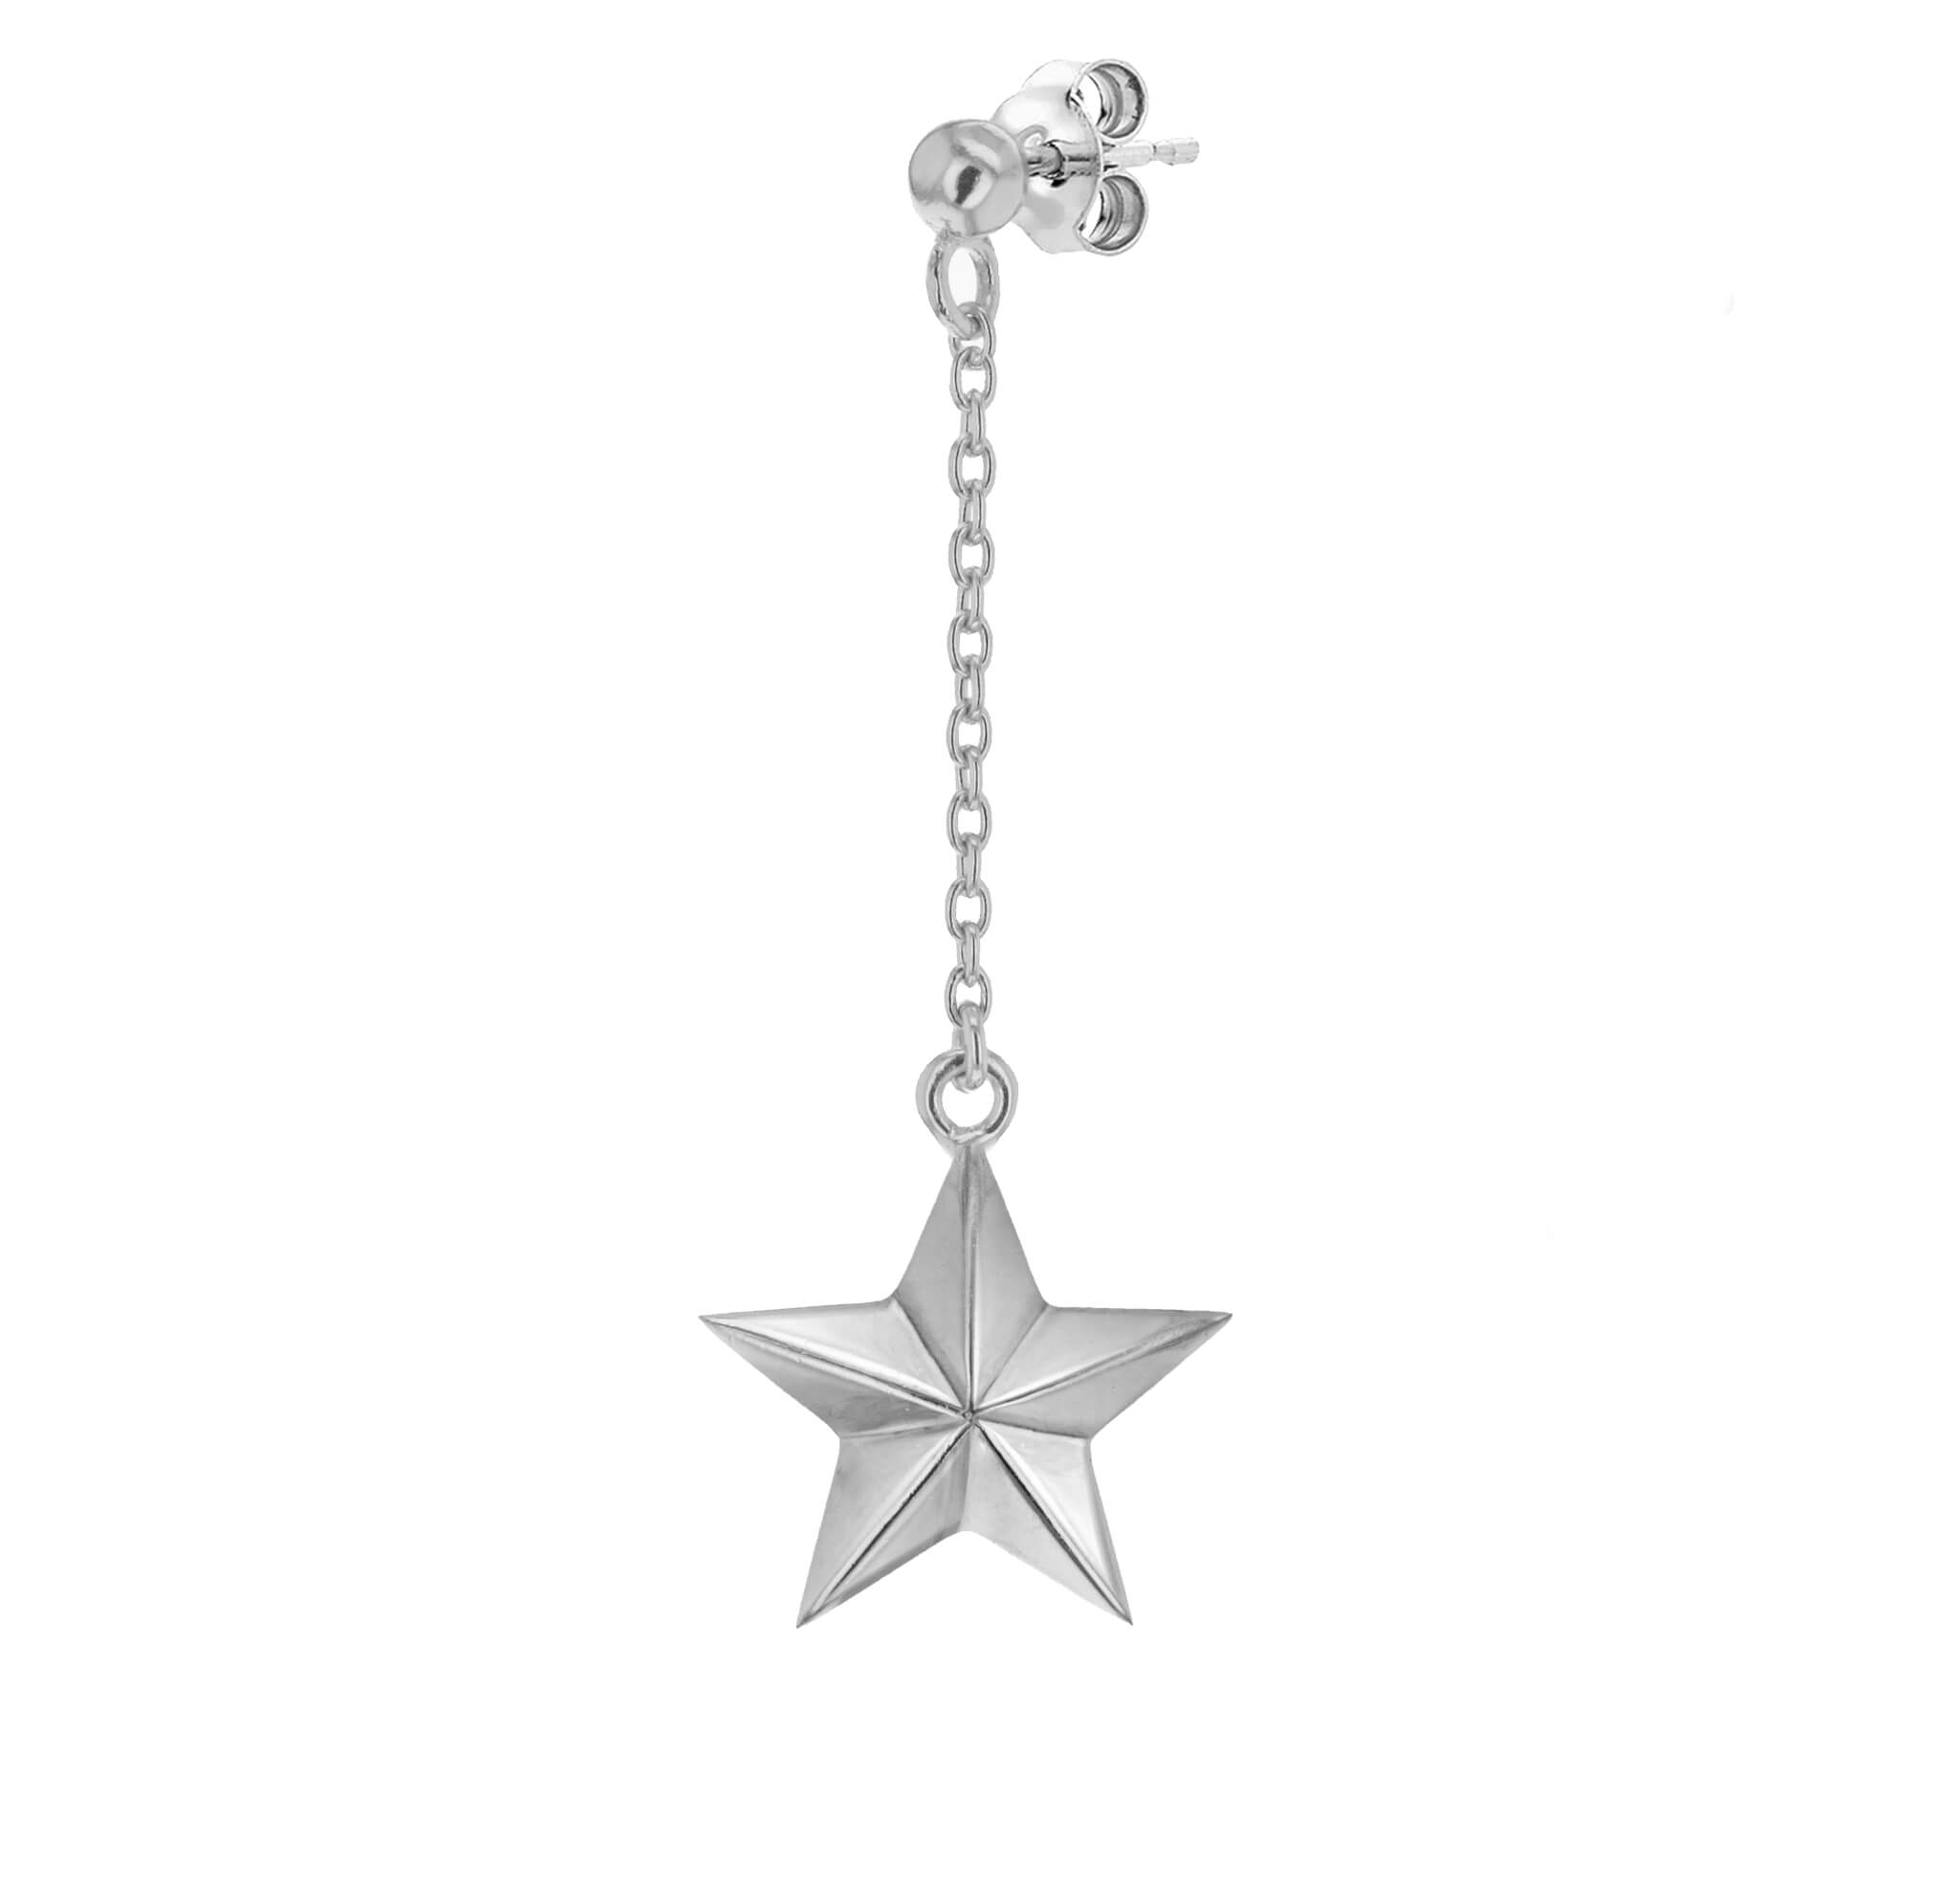 star earrings silver.jpg1